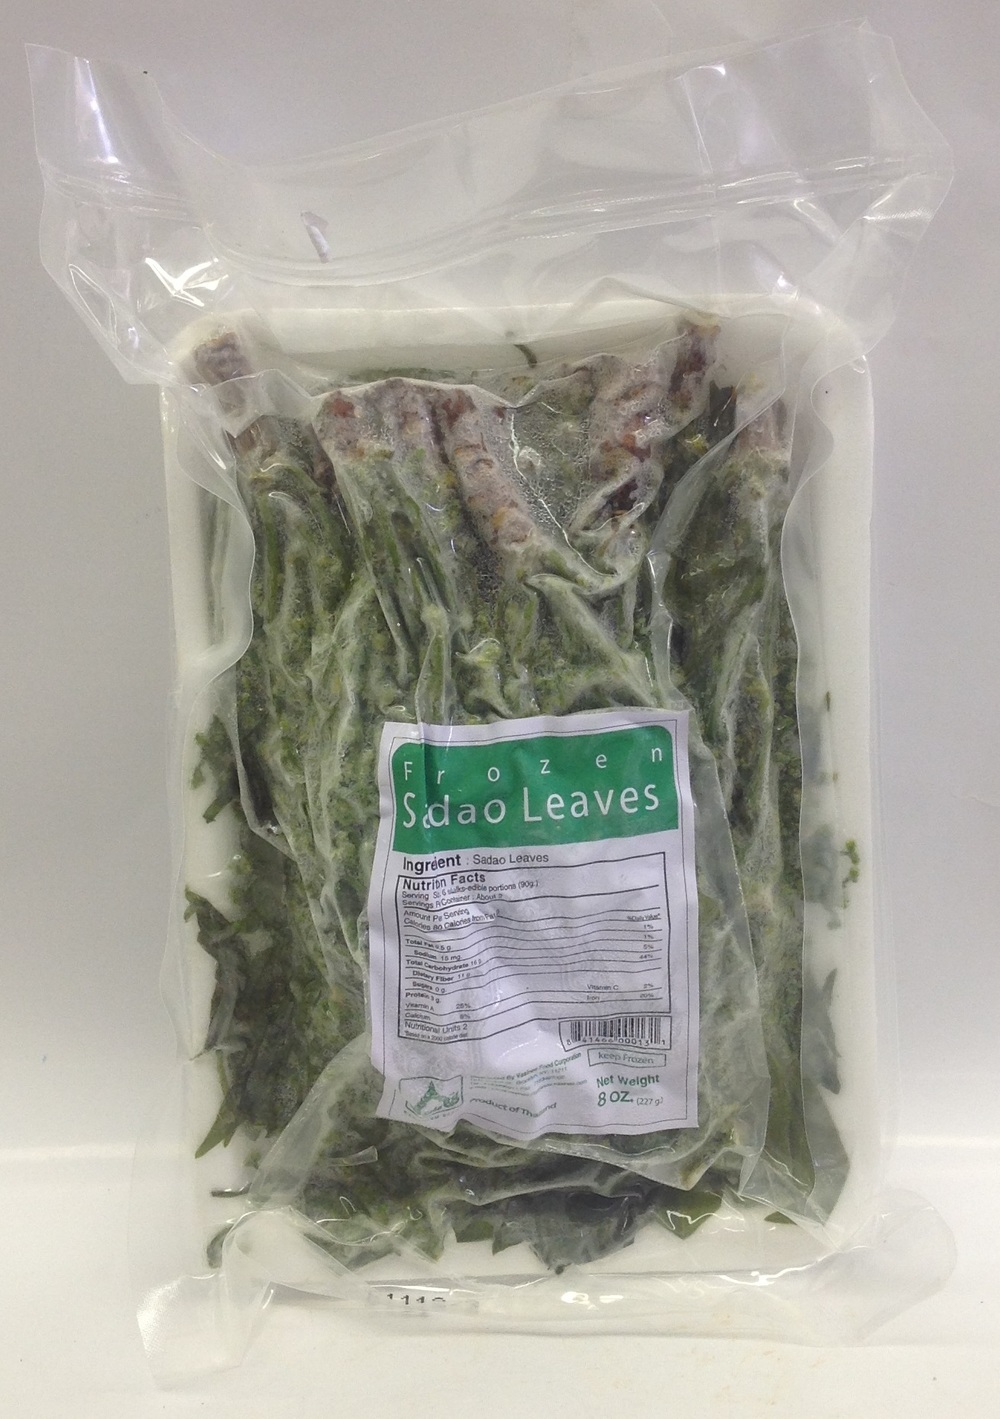 Frozen Sadao Leaves   Wangderm   FZV7100 45x8 oz